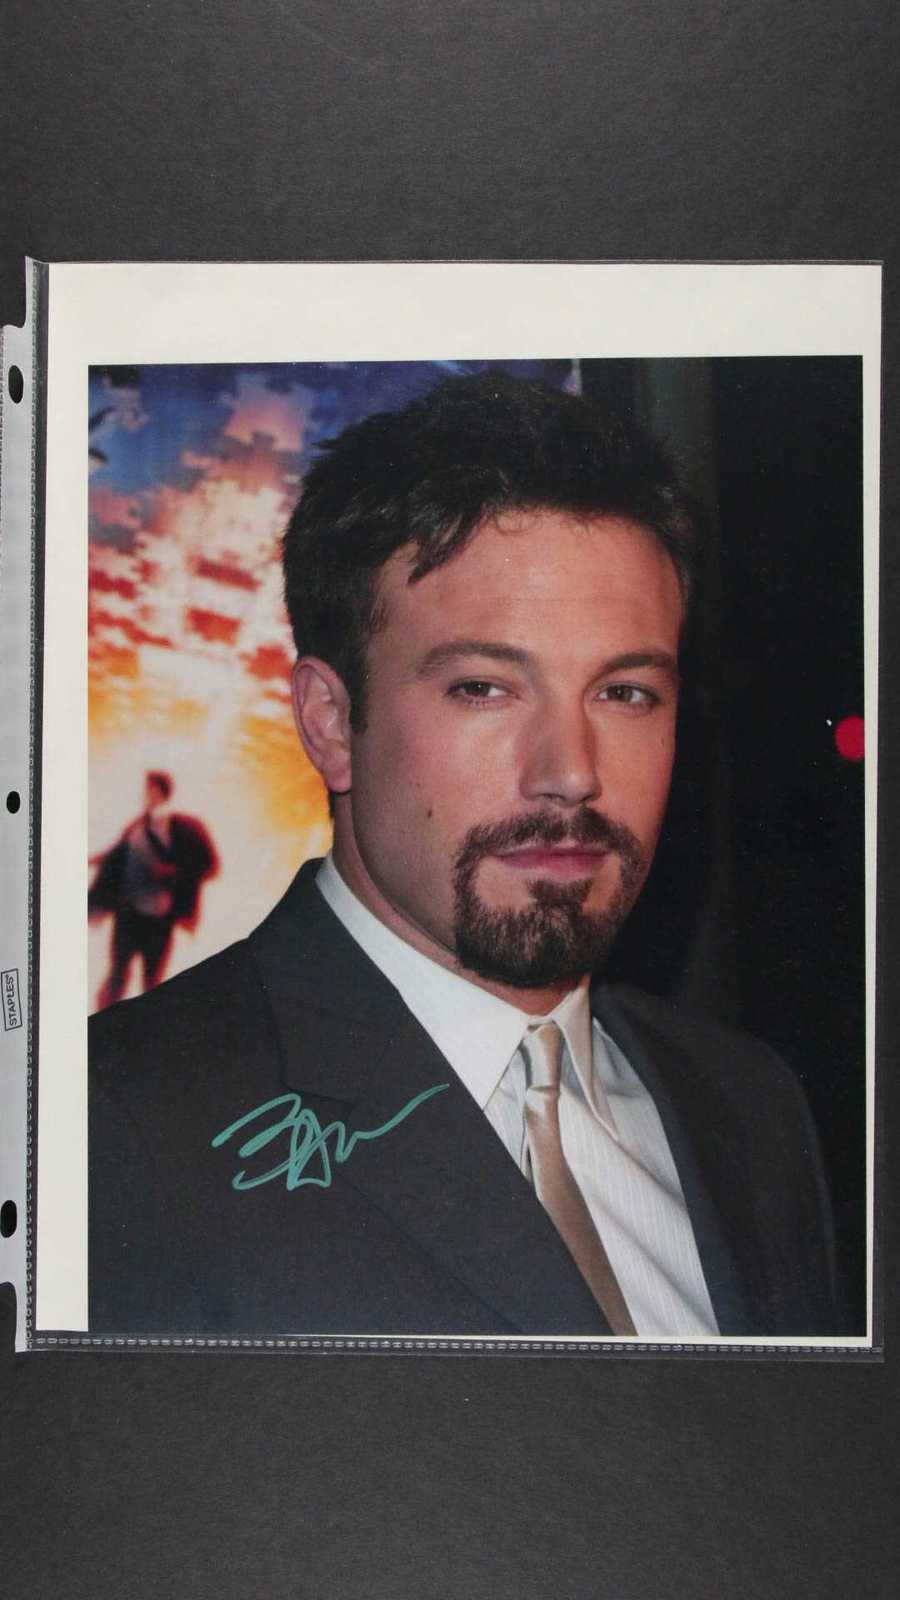 Primary image for Ben Affleck Signed Autographed Glossy 8x10 Photo